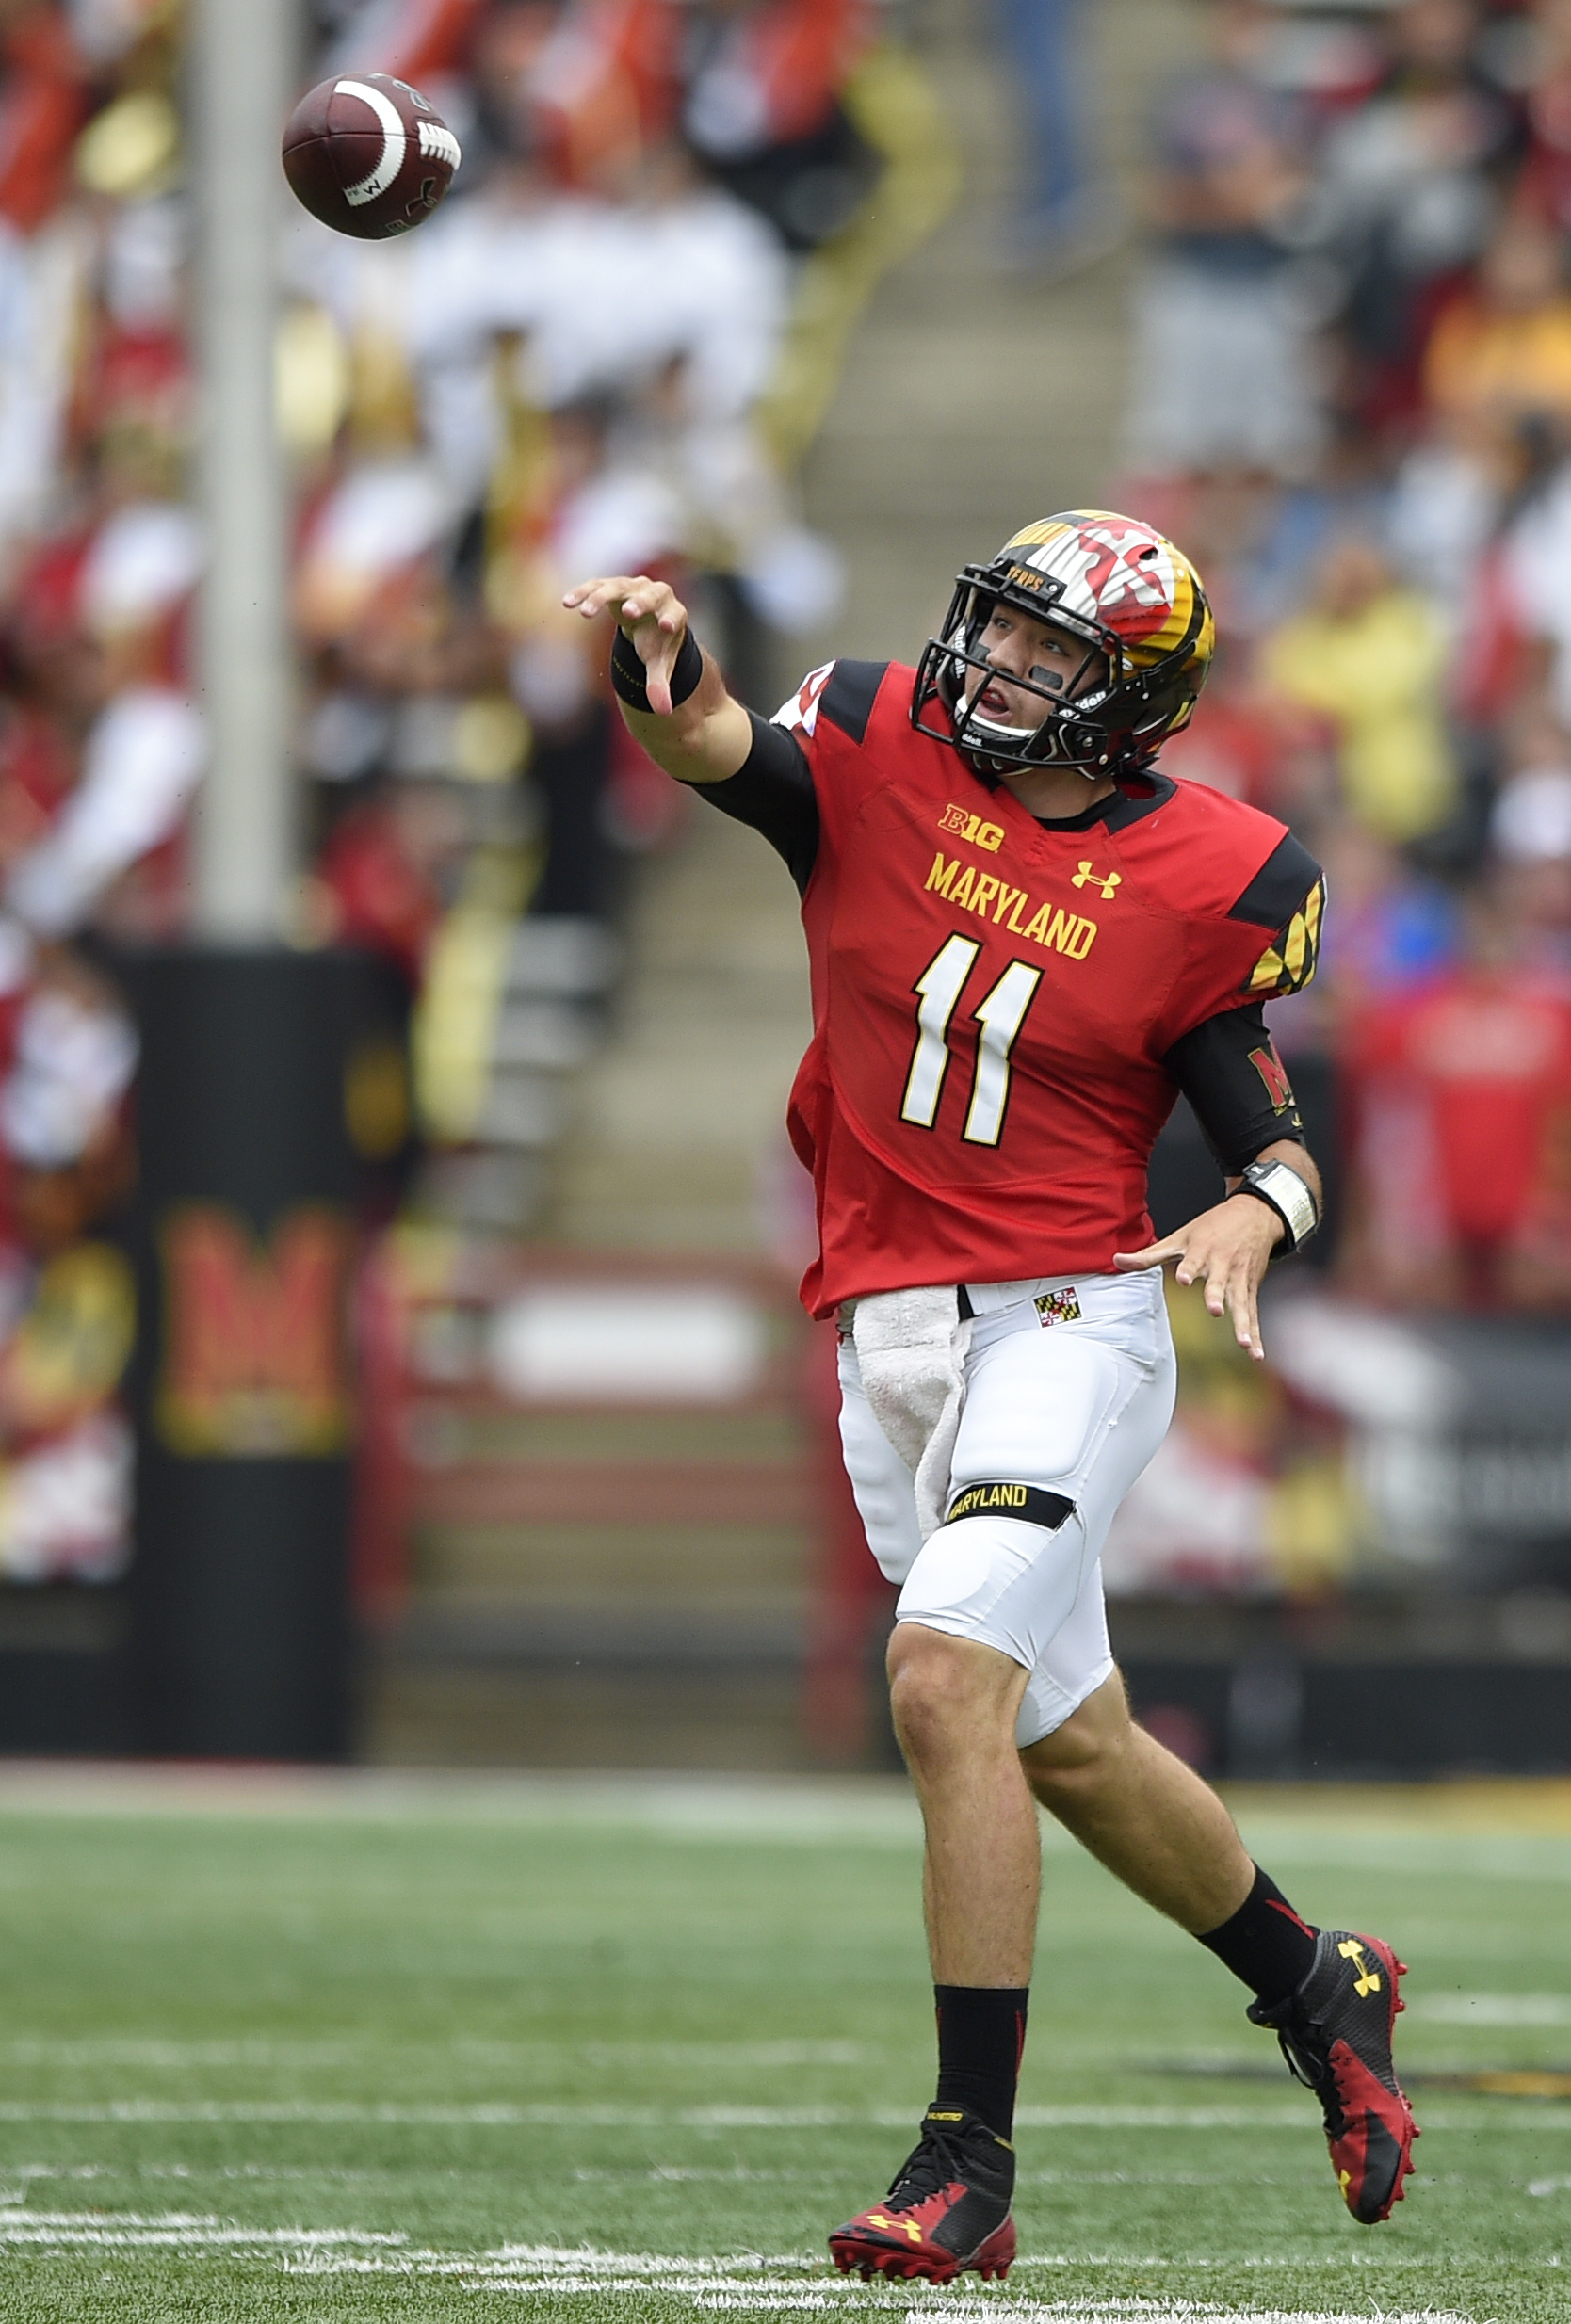 Maryland quarterback Perry Hills (11) throws a pass during the first half of an NCAA college football game against Bowling Green, Saturday, Sept. 12, 2015, in College Park, Md. (AP Photo/Nick Wass)